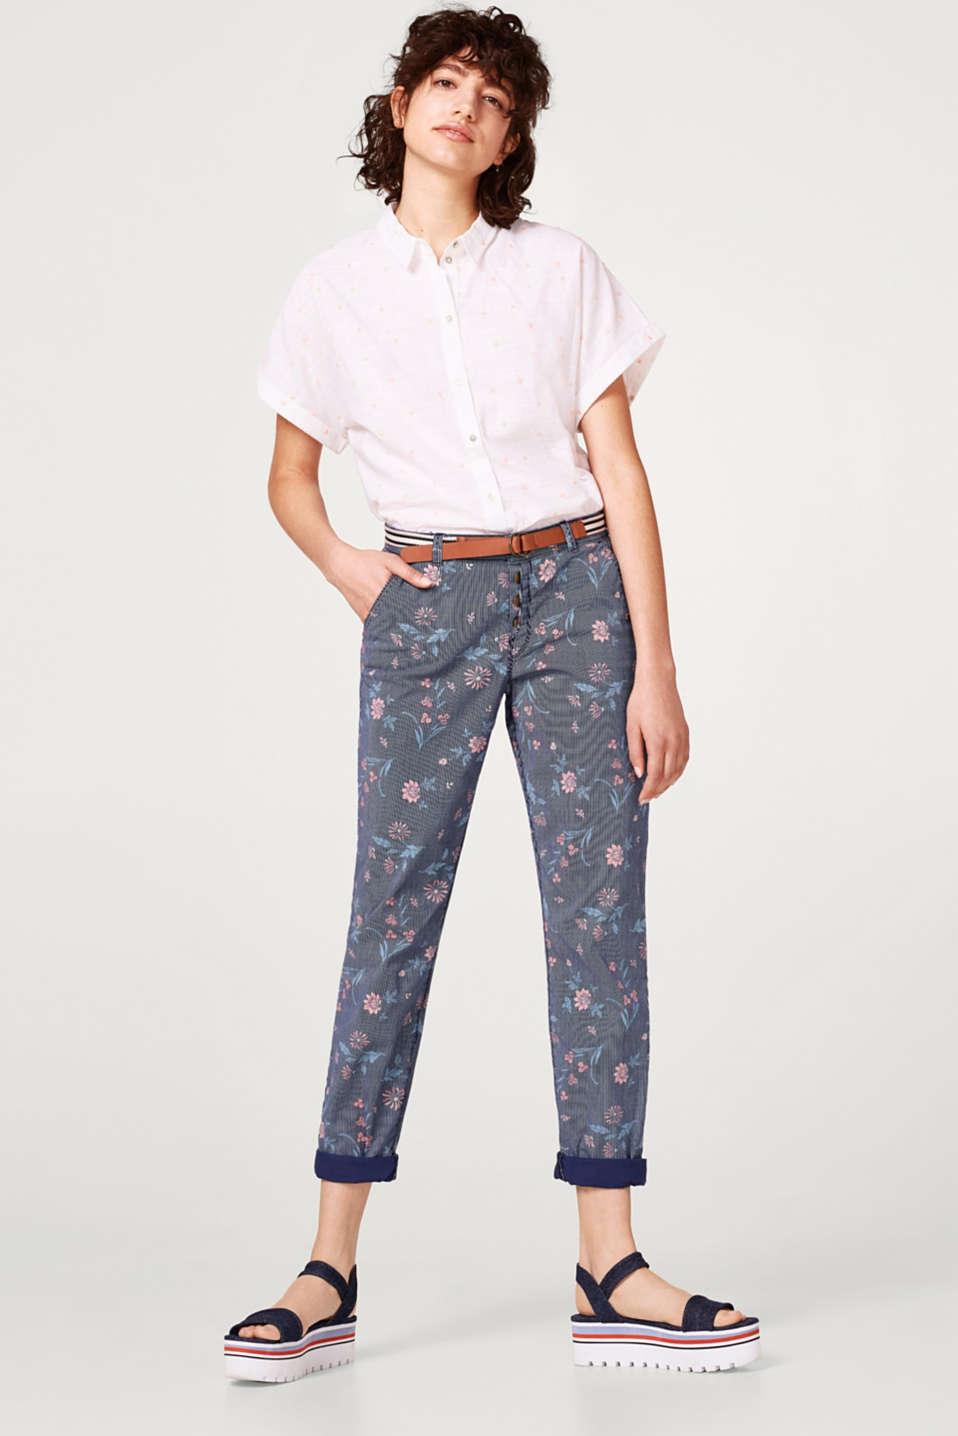 Printed chinos with a button fly and belt